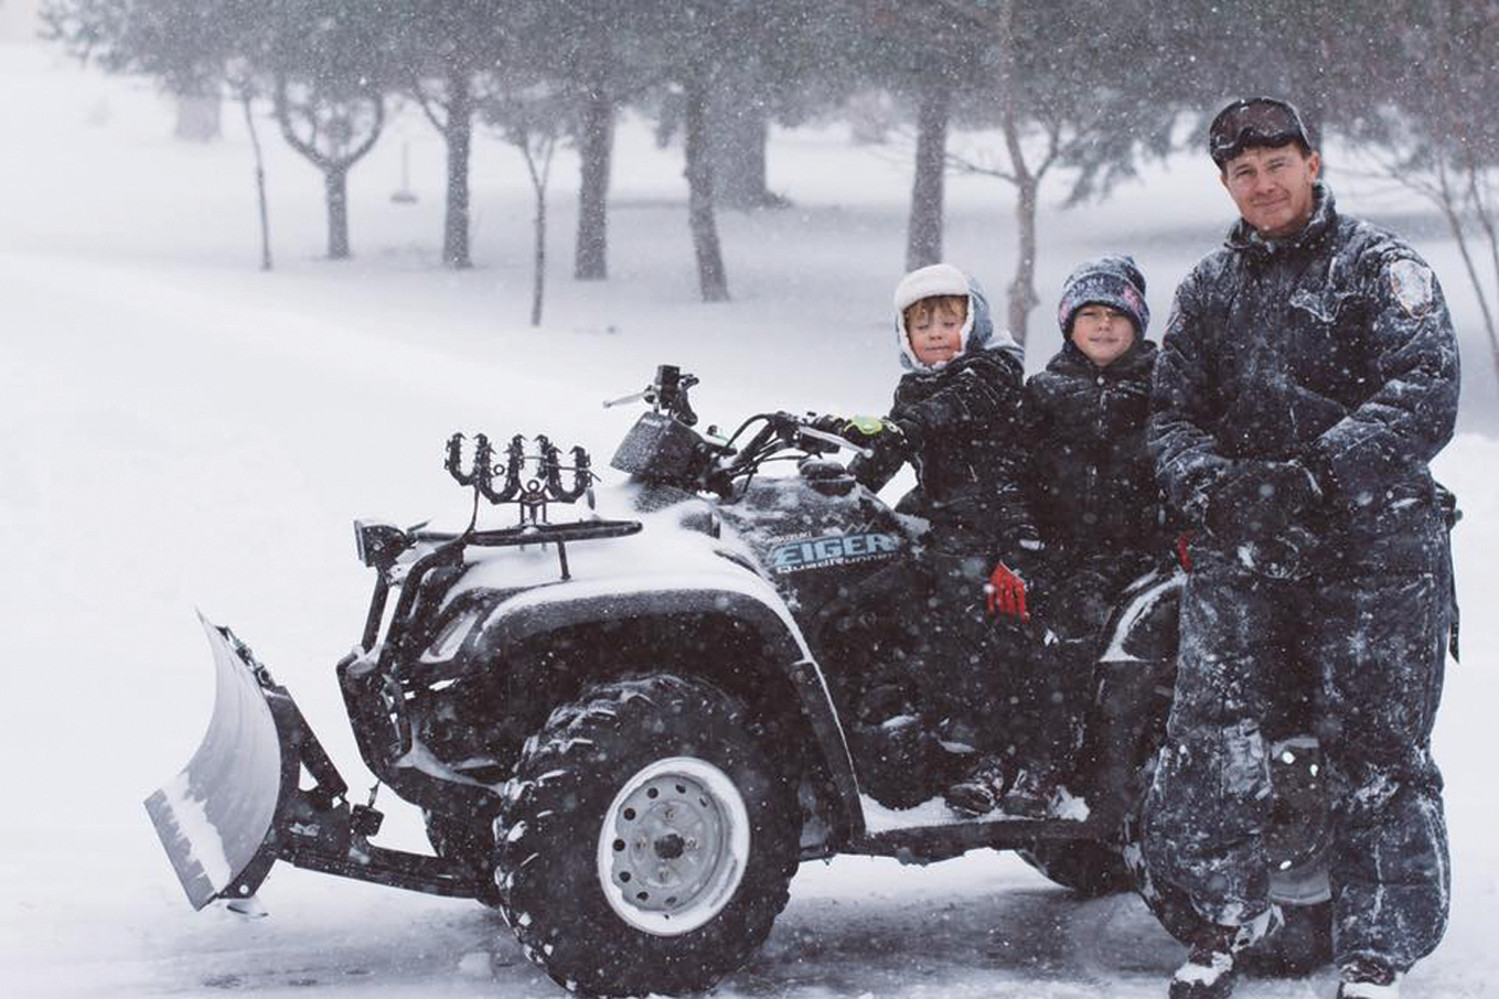 ATV FUN: Tony, Anthony and Emmett LeDoux decided to take a ride during the storm and explore. (Submitted photo by Samantha LeDoux)